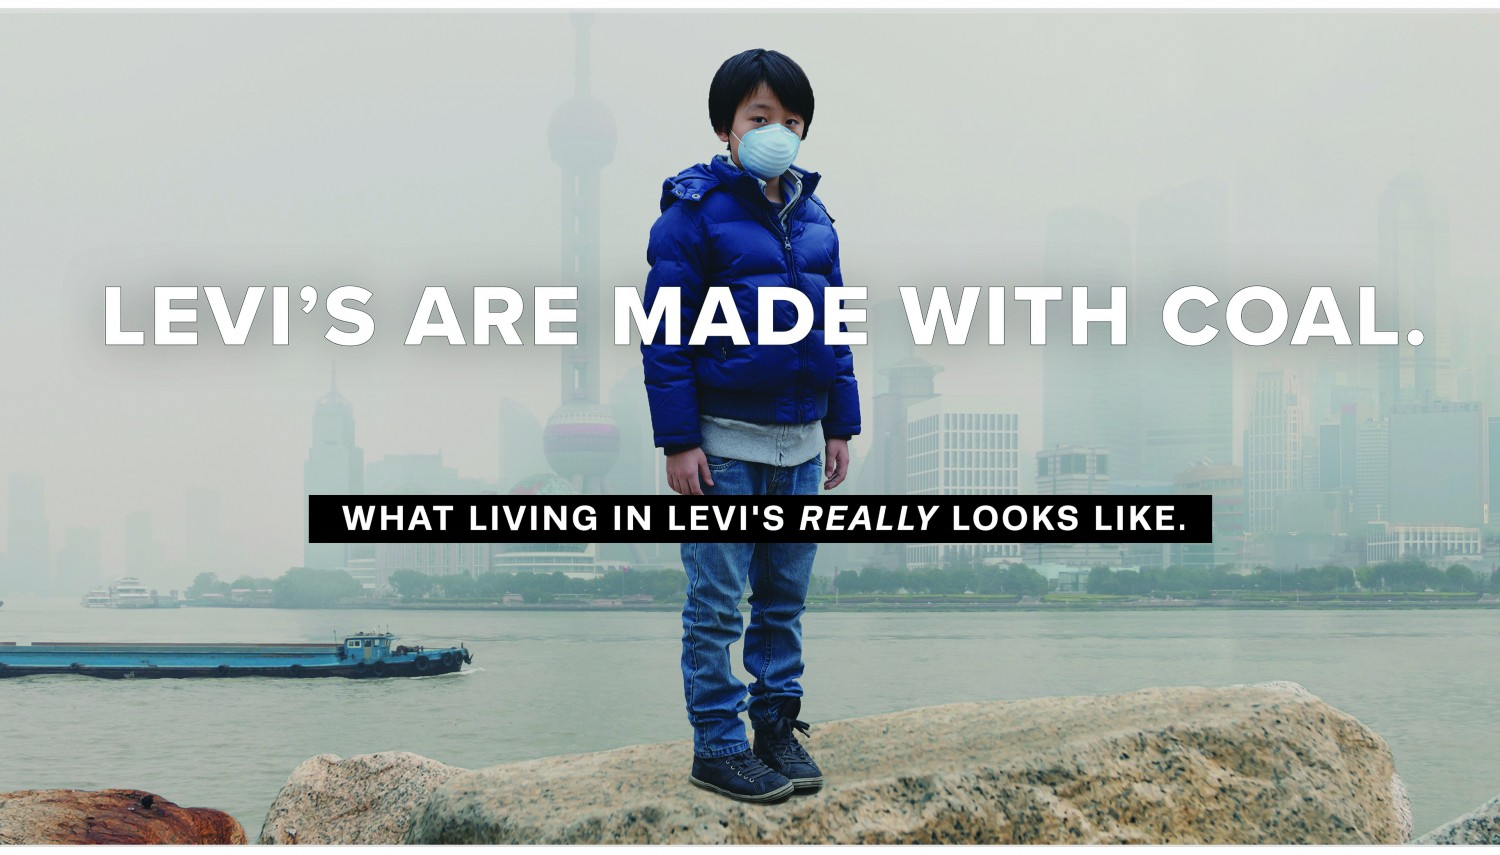 Levis-Too-Deadly-To-Wear-Report